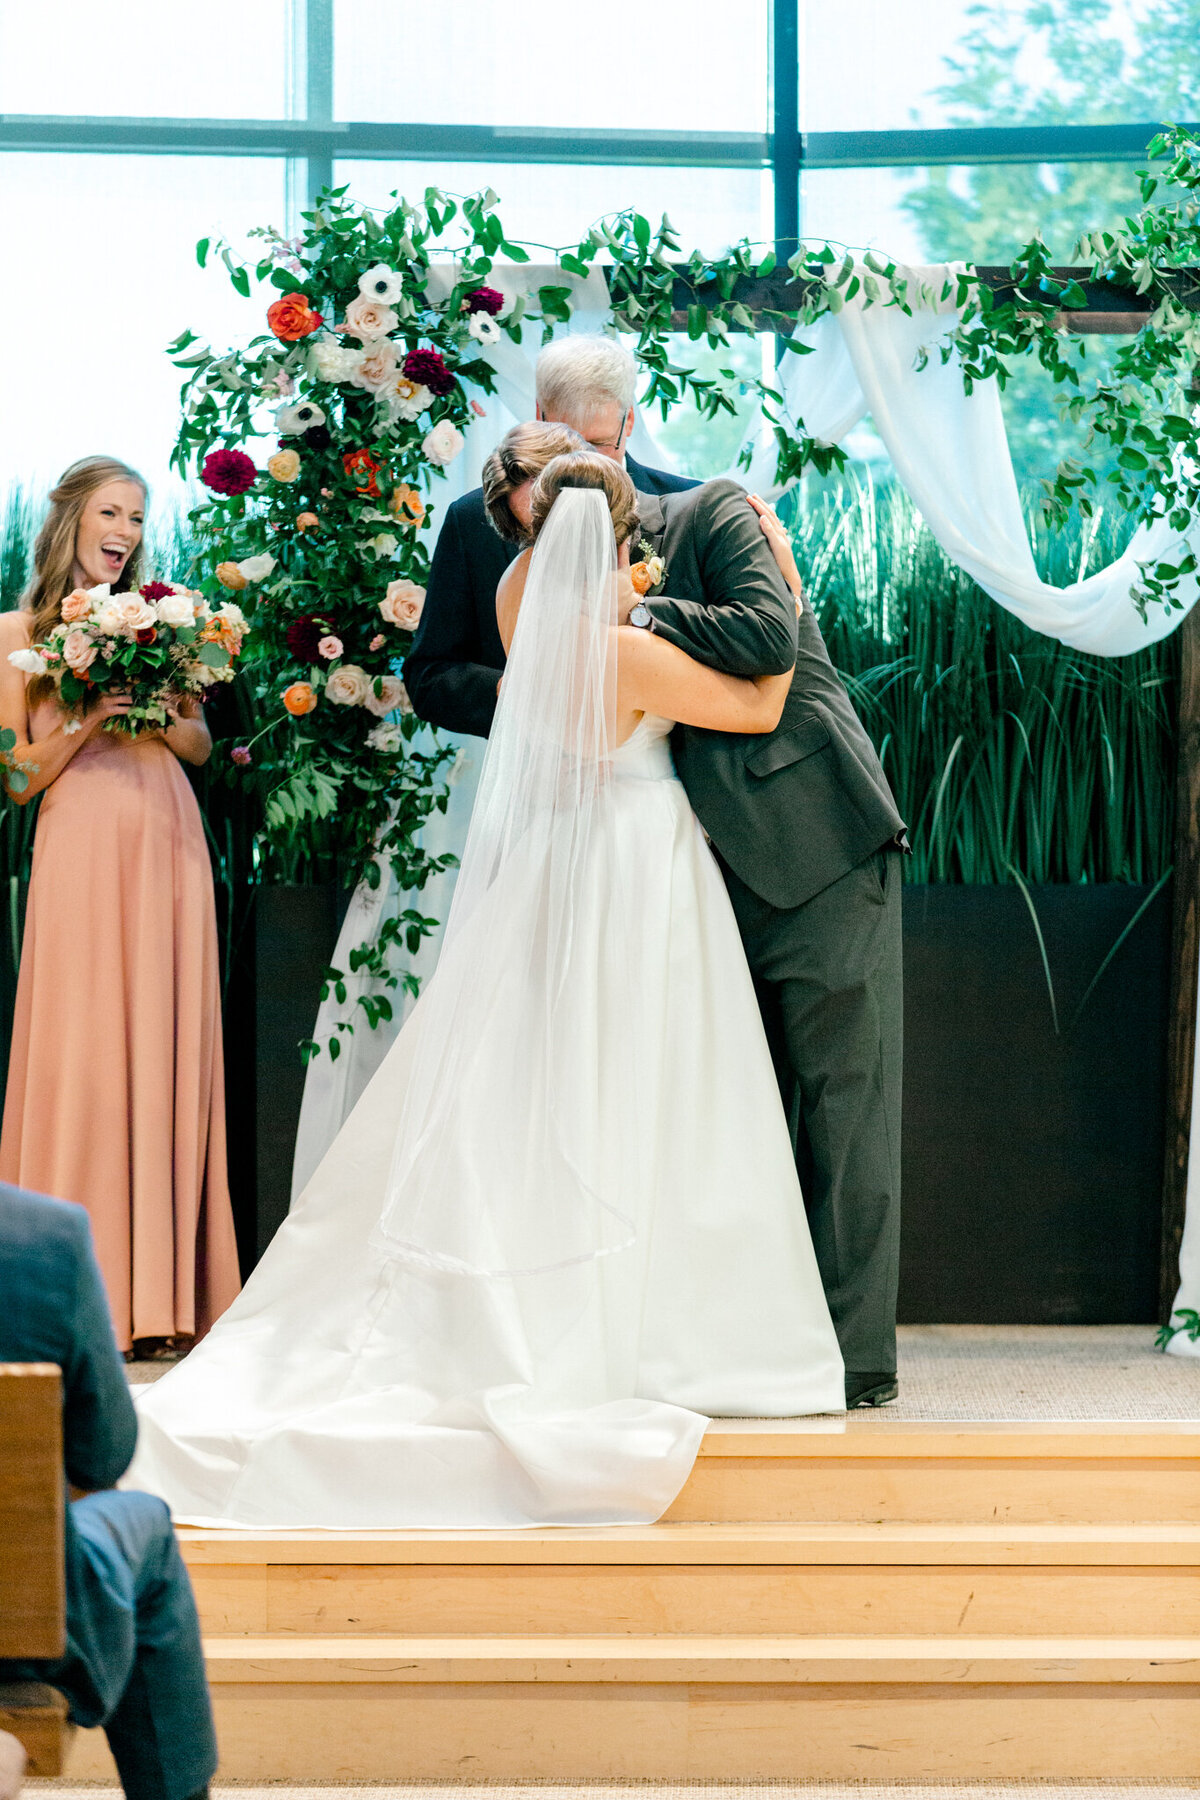 Kaylee & Michael's Wedding at Watermark Community Church | Dallas Wedding Photographer | Sami Kathryn Photography-115